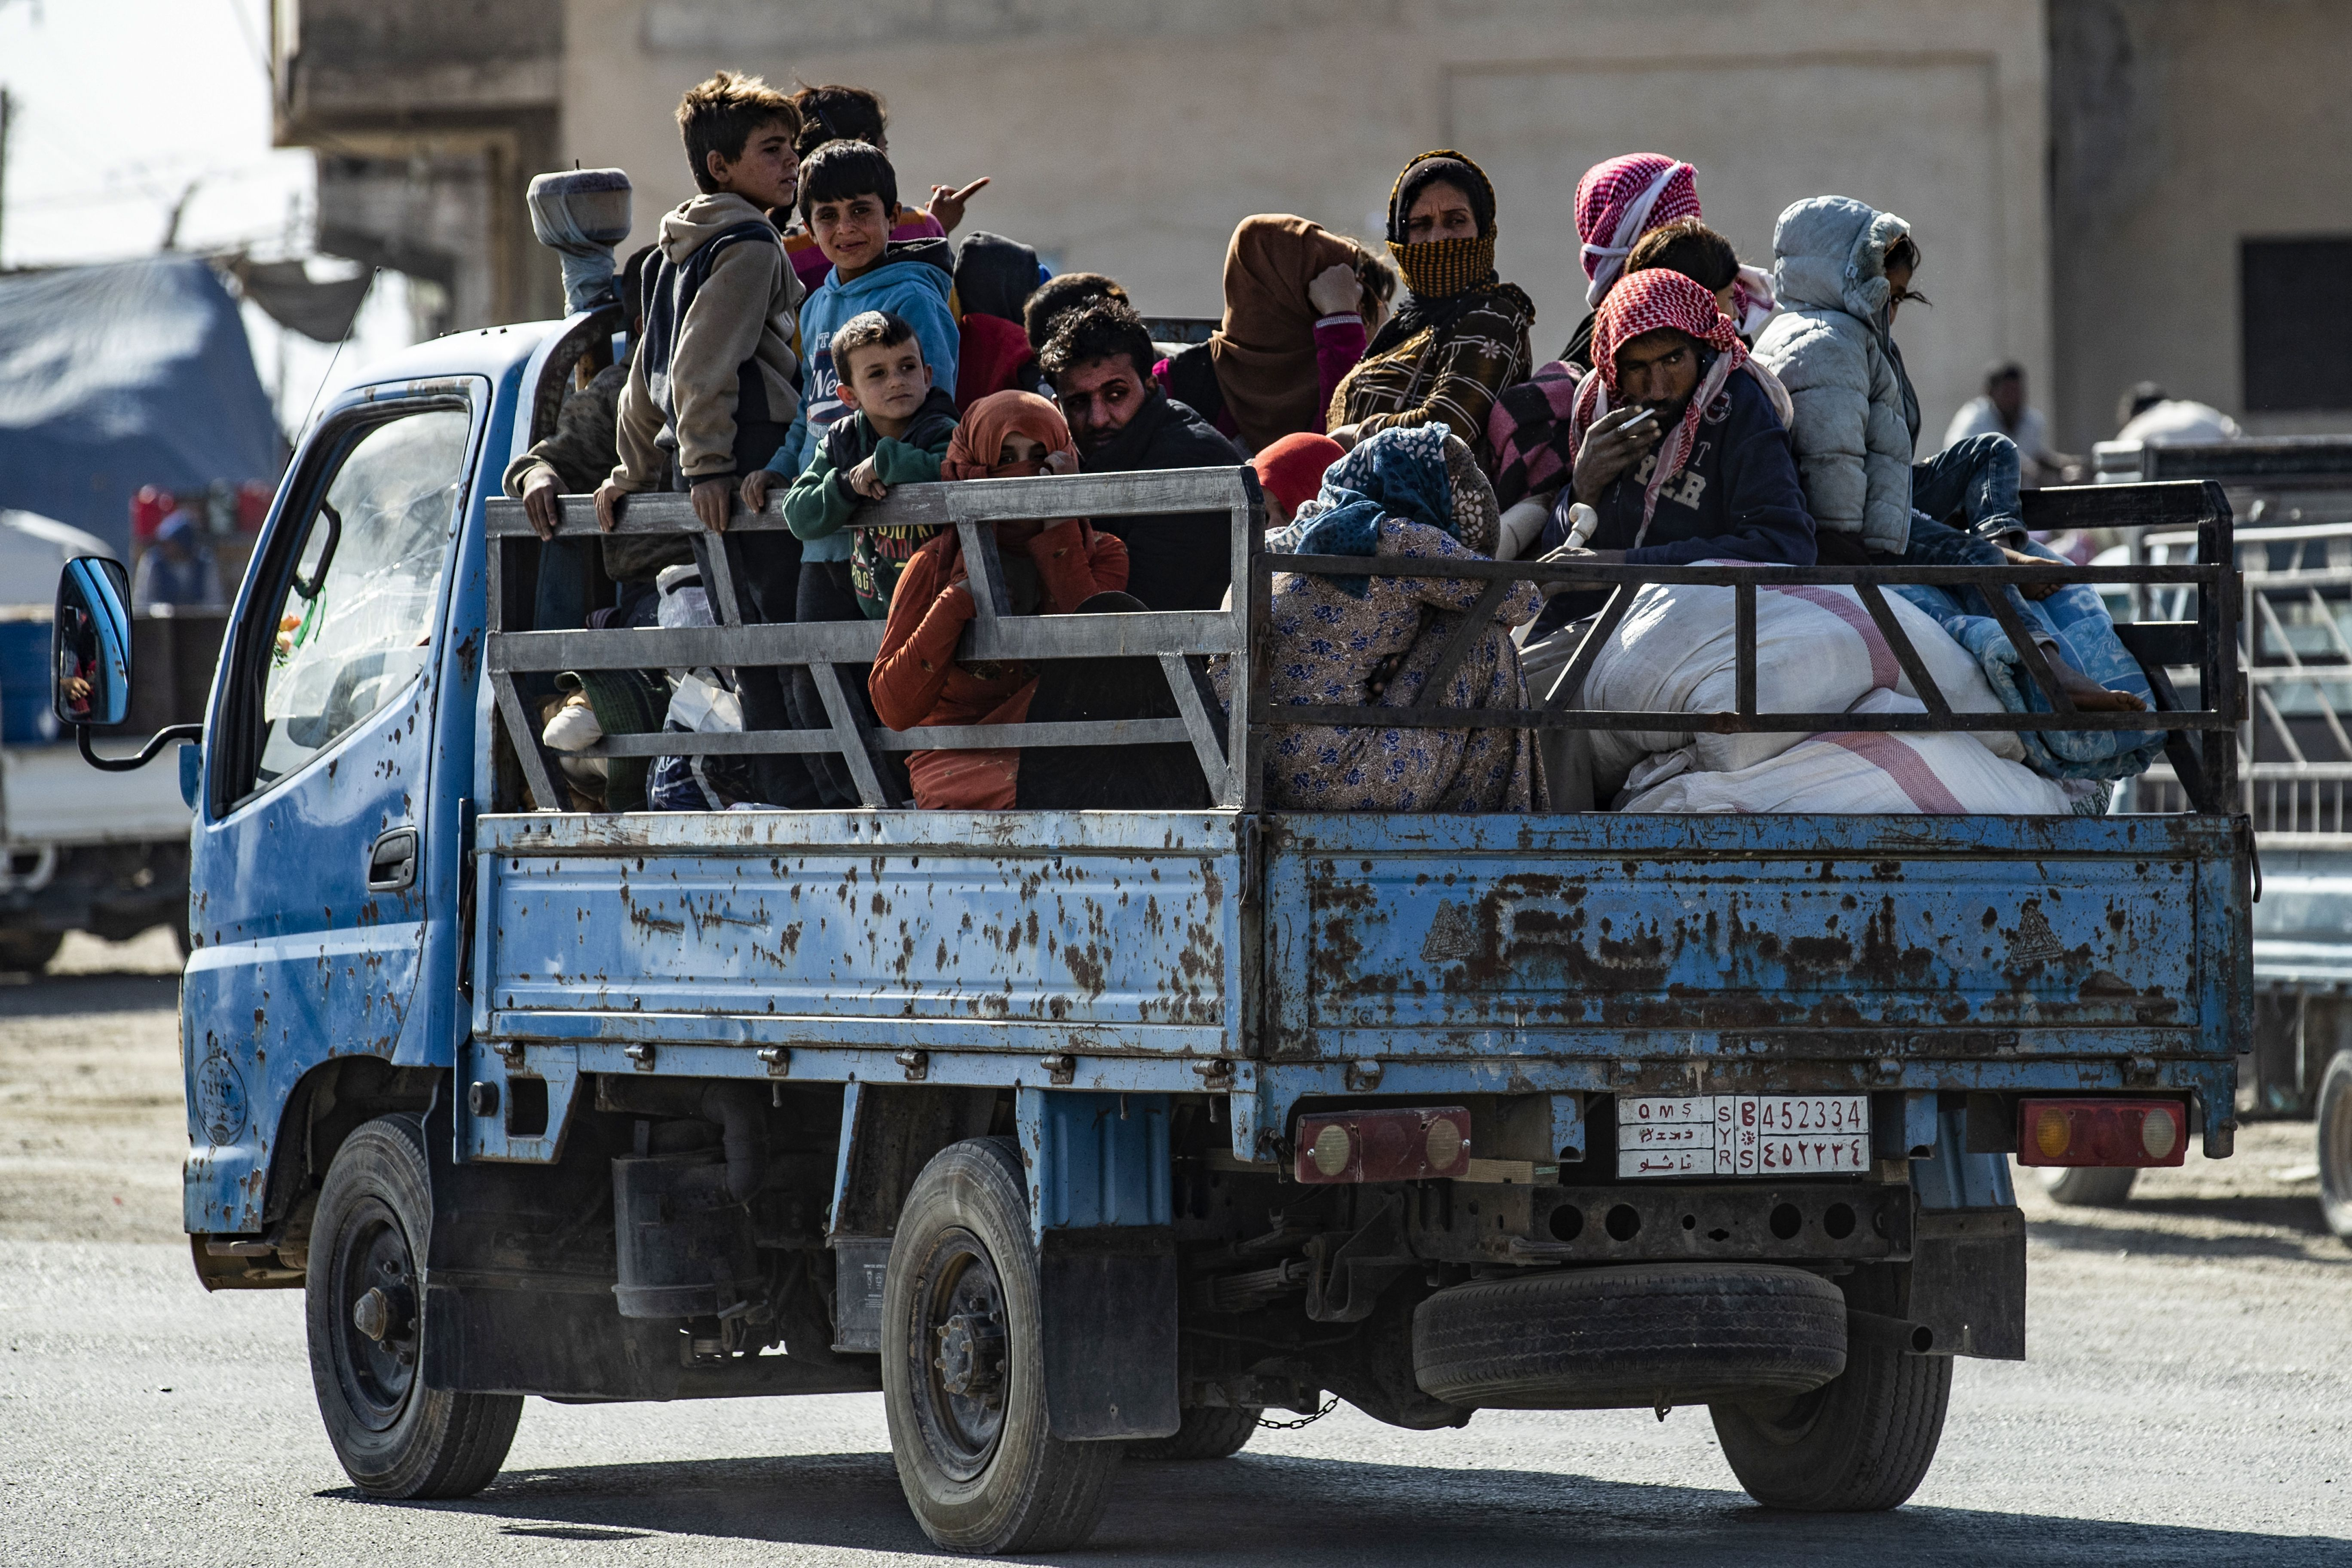 Syrian families fleeing the battle zone between Turkey-led forces and Kurdish fighters from the Syrian Democratic Forces (SDF) in and around the northern flashpoint town of Ras al-Ain on the border with Turkey, arrive along with Syrian Arab and Kurdish civilians in the city of Tal Tamr on the outskirts of Hasakeh on October 15, 2019. (DELIL SOULEIMAN/AFP via Getty Images)